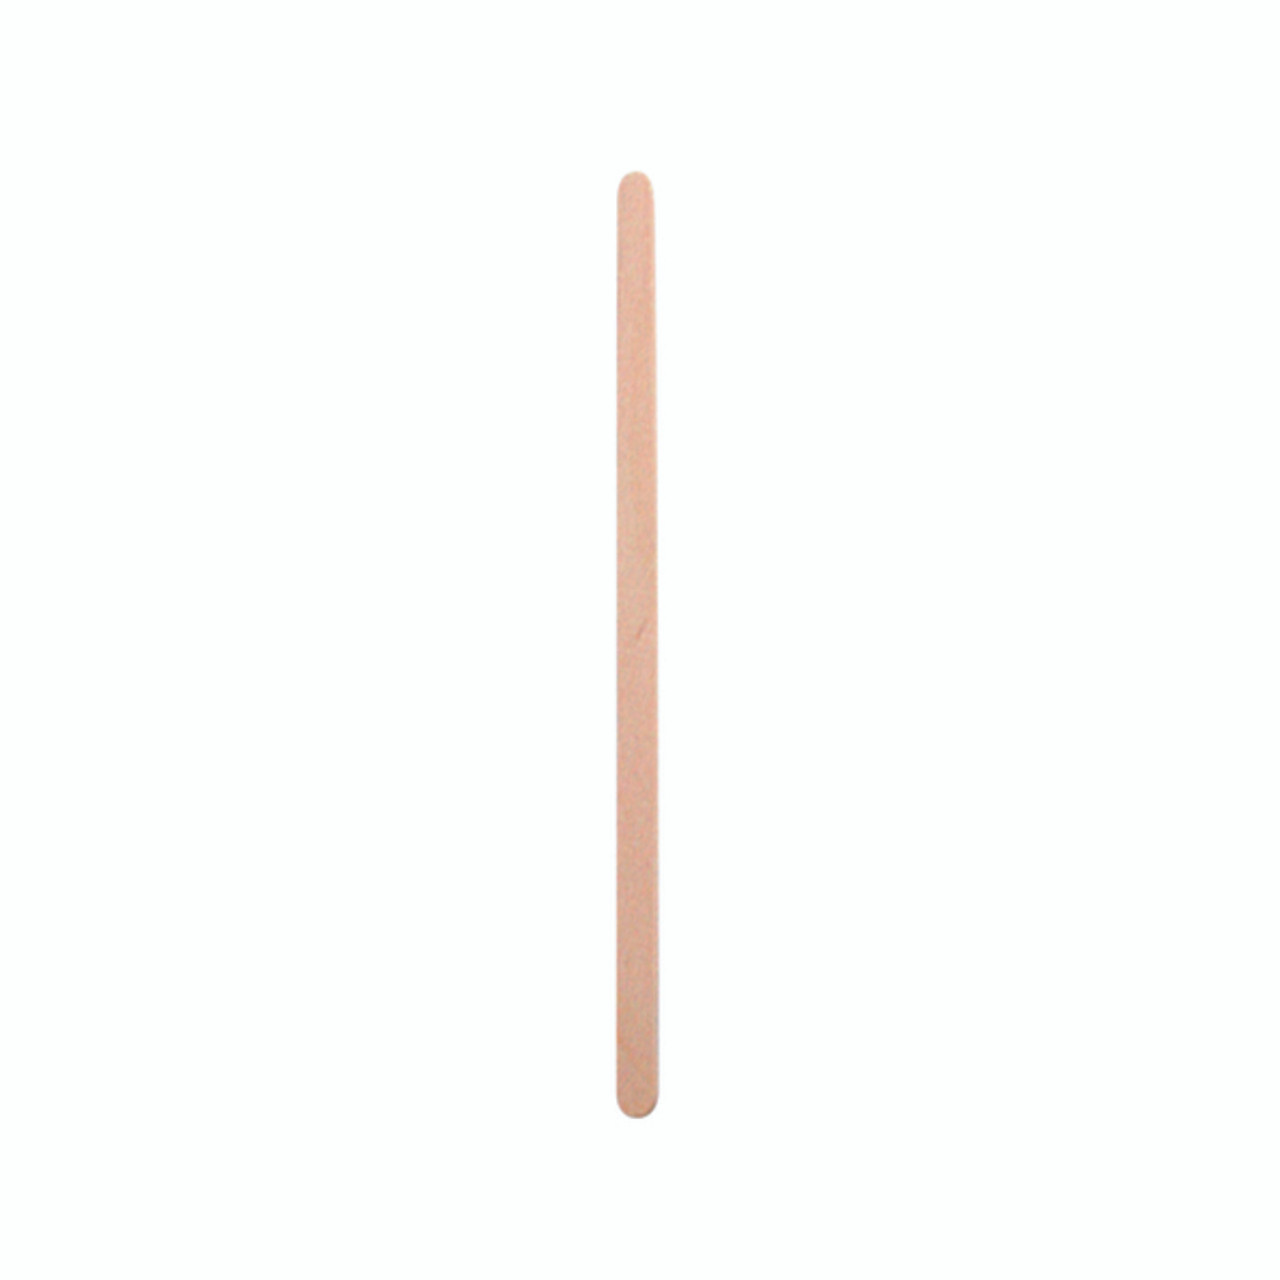 Wooden Coffee Stirrers - L:4.3in